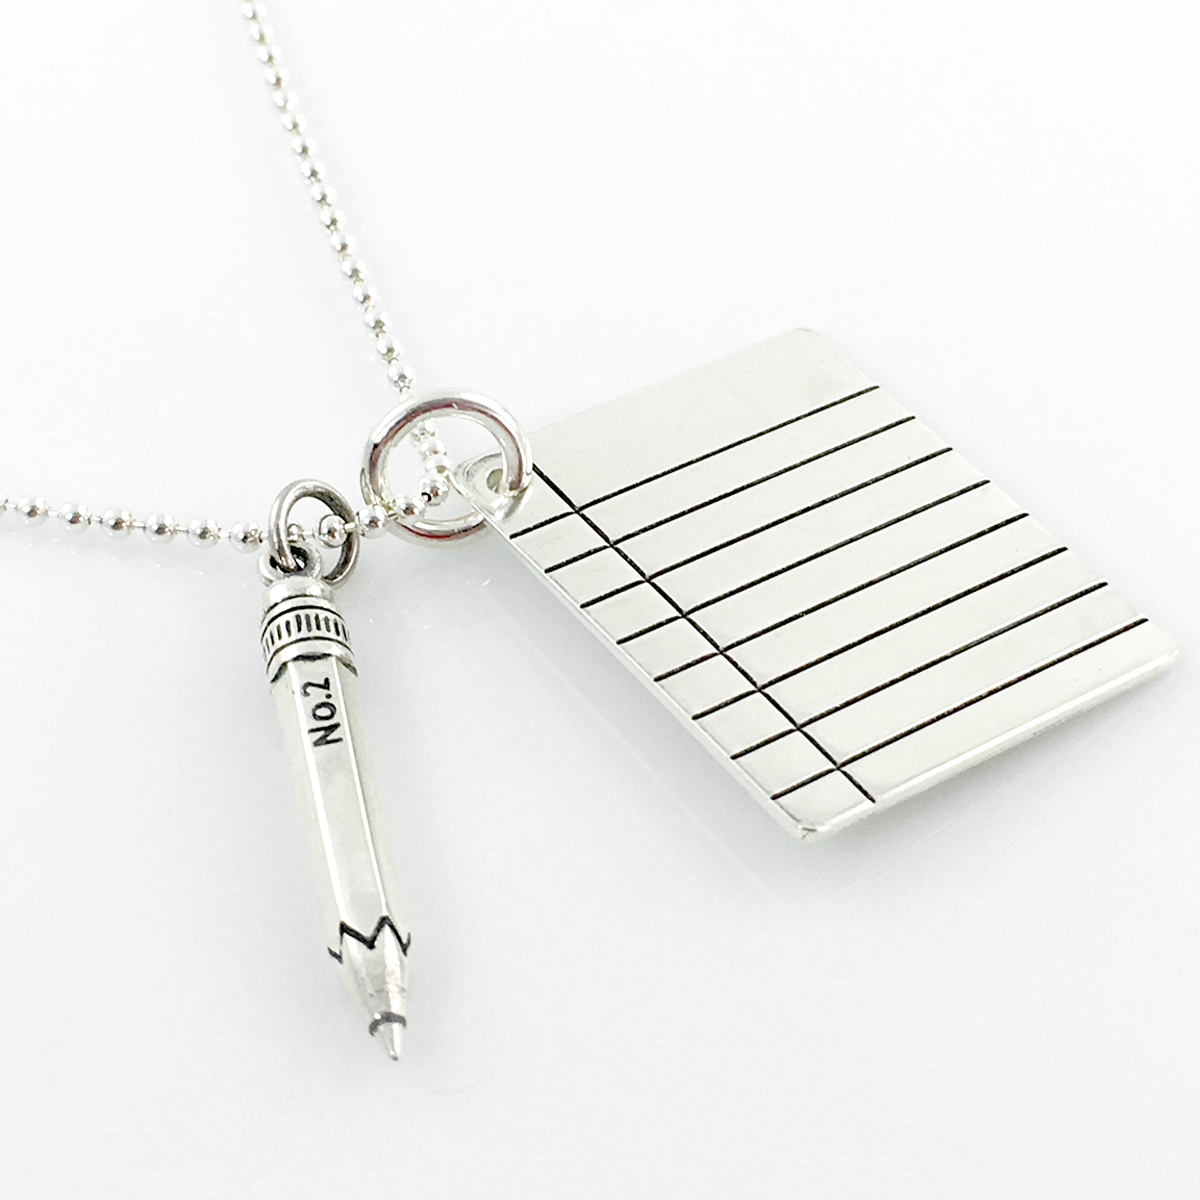 Binder Paper and Pencil Sterling Silver Necklace